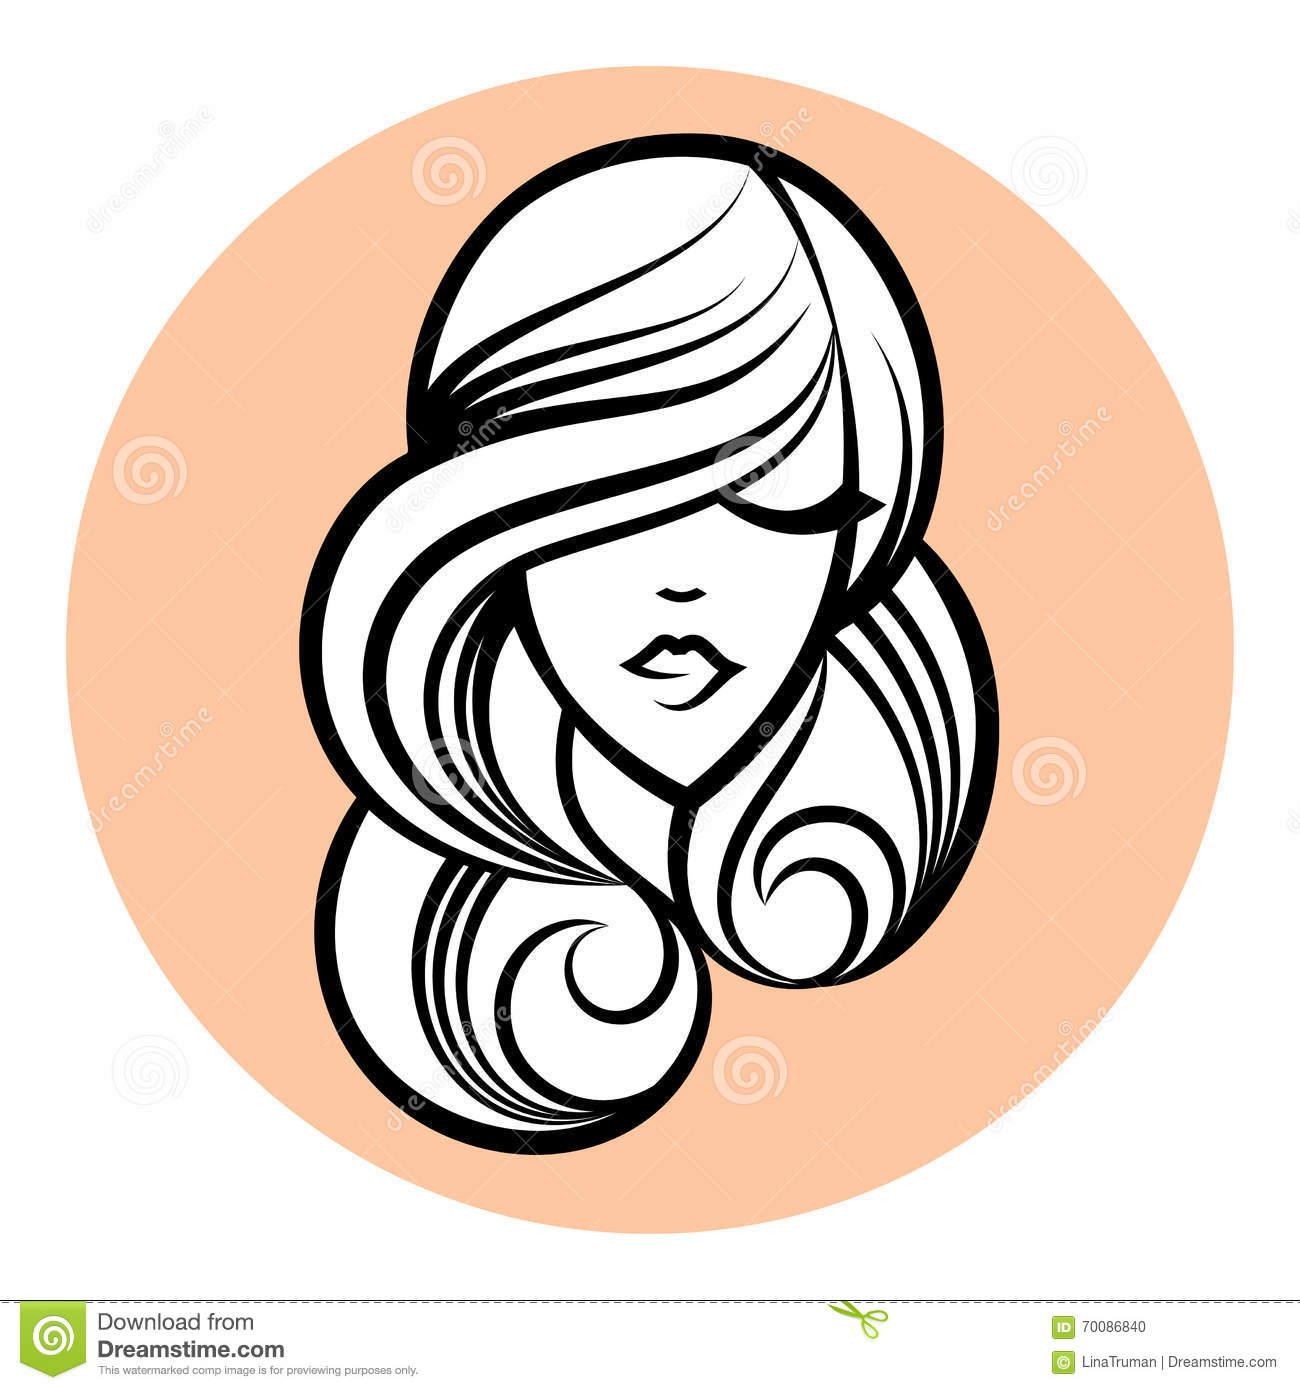 Woman silhouette women s face drawing abstract design concept